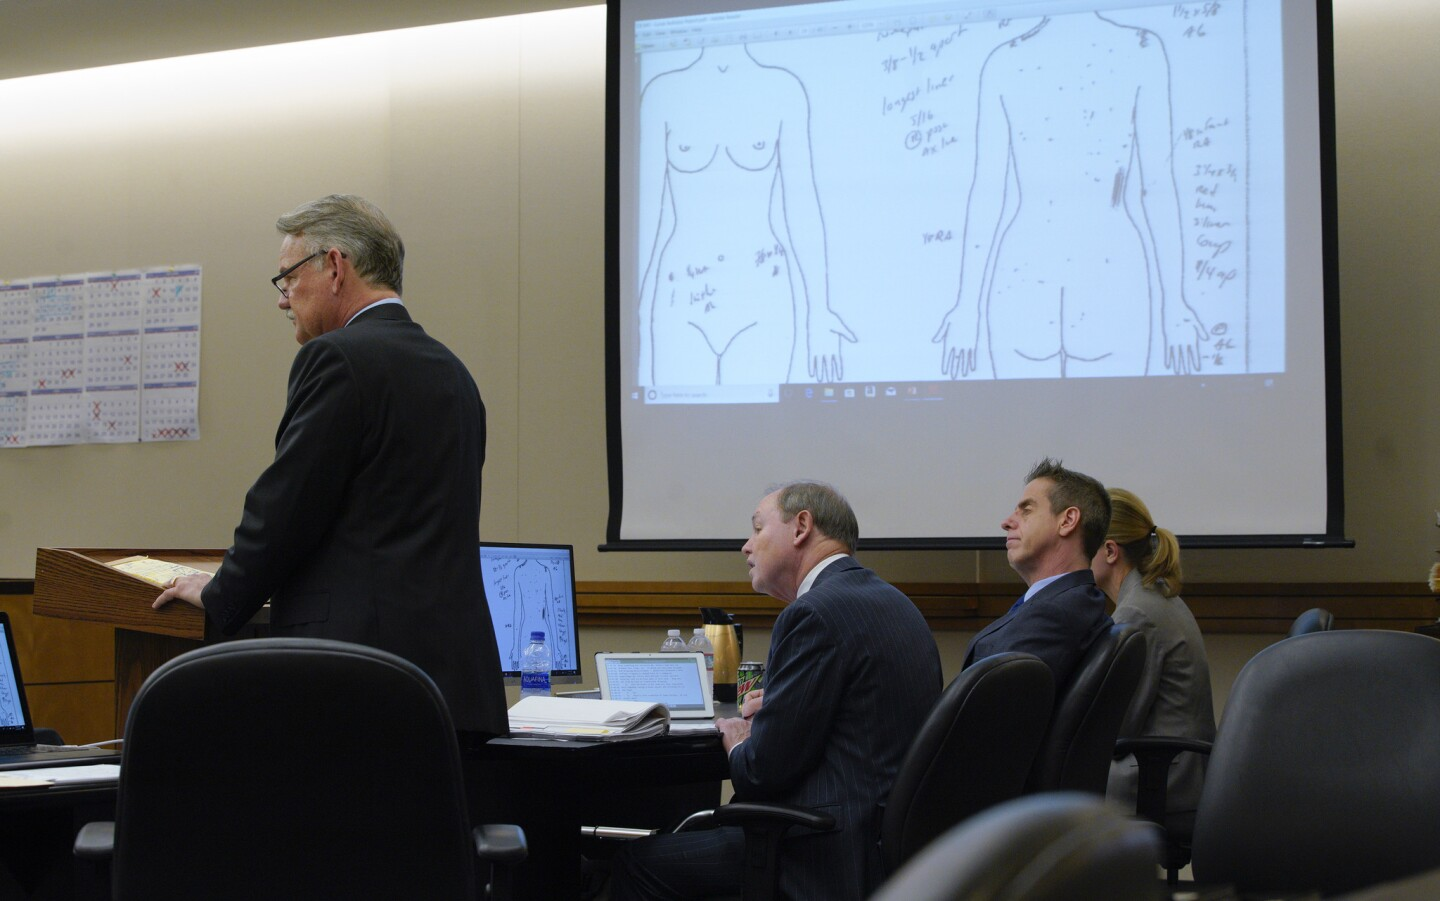 Defendant Adam Shacknai sits at the defense table with his attorneys, Dan Webb and Krista M. Enns, as Dr. Cyril Wecht, forensic pathologist is questioned on the witness stand by plaintiff attorney, Keith Greer about the injuries to Rebecca Zahau s head.